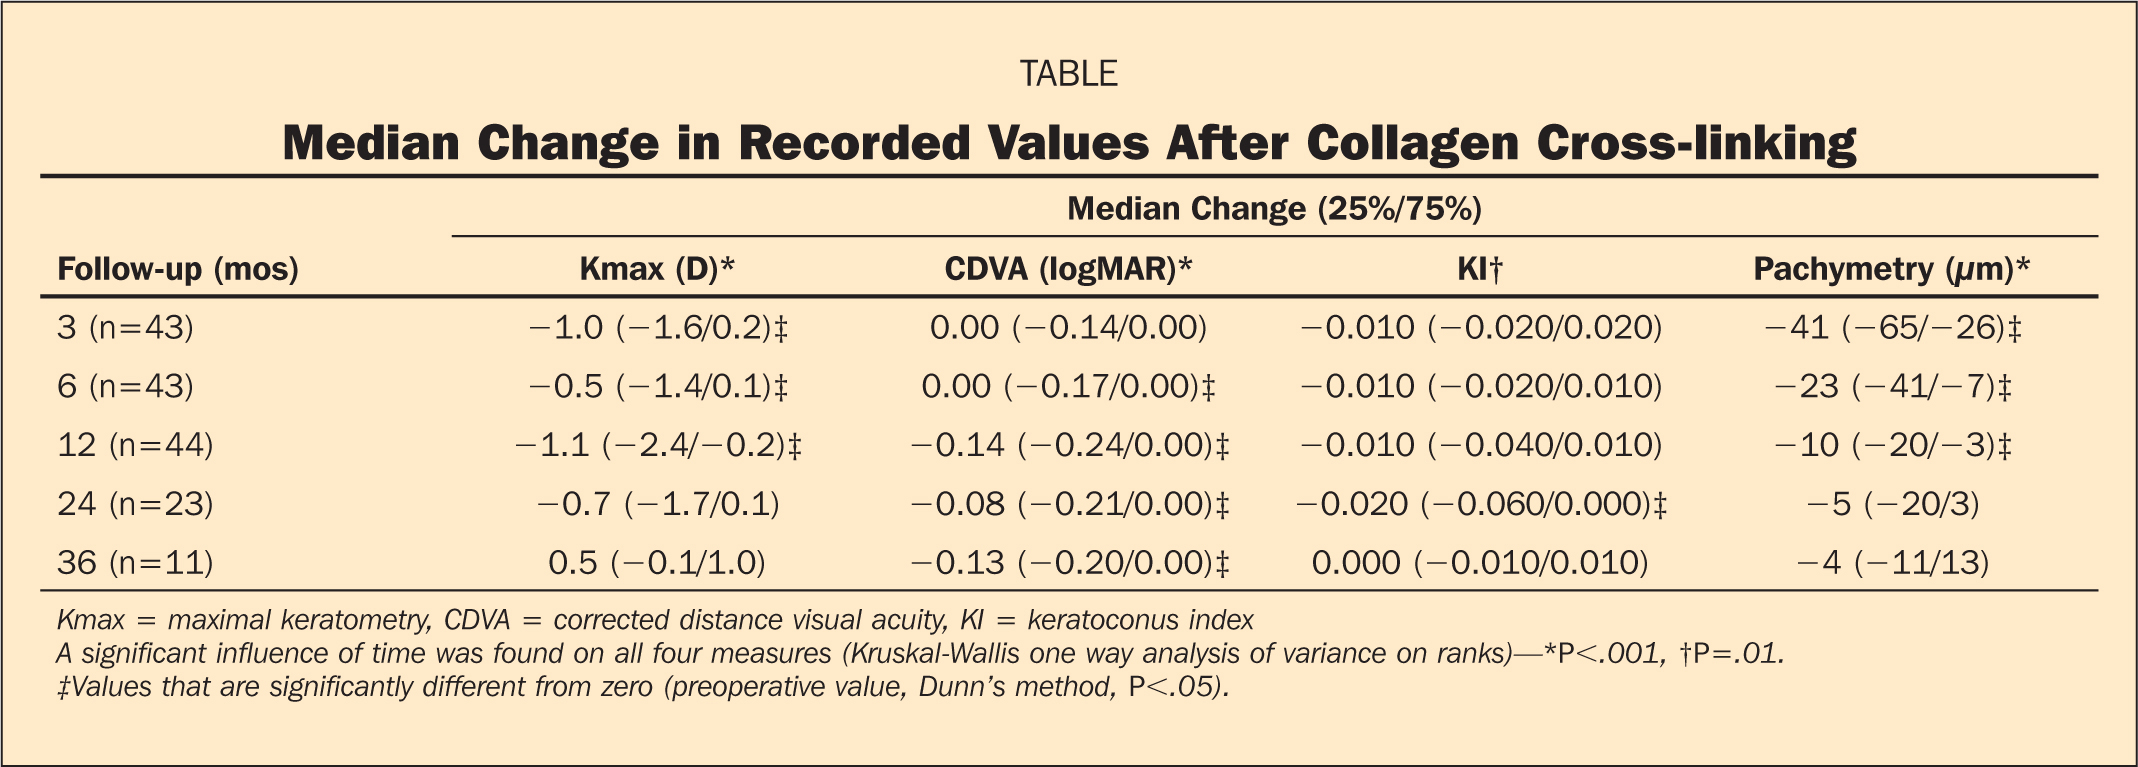 Median Change in Recorded Values After Collagen Cross-linking